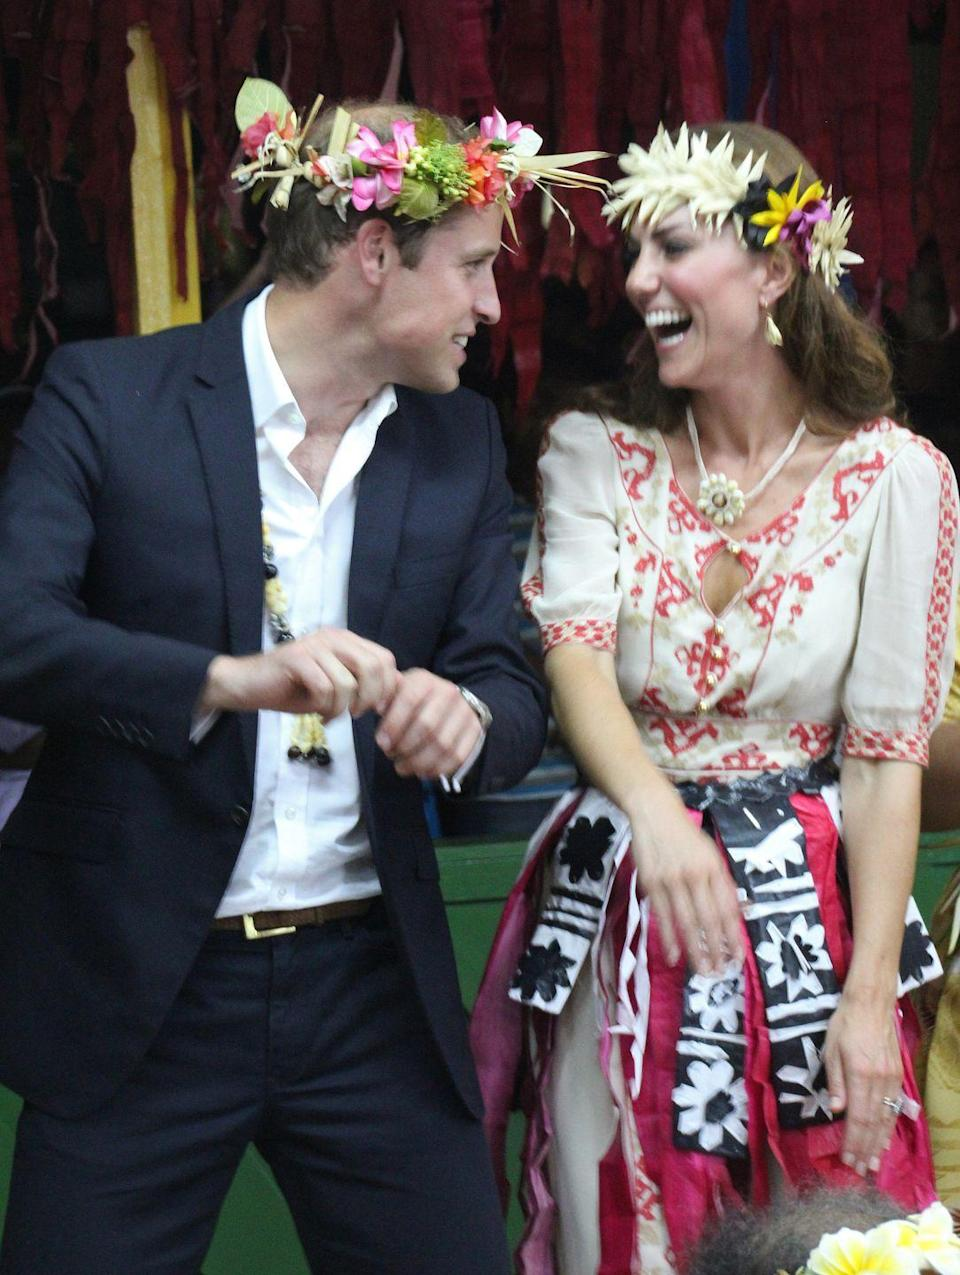 <p>The couple that laughs together stays together and the Duke and Duchess certainly seem to enjoy being around one another! Here they're seen giggling together as they dance in Tuvalu in the South Pacific. Is Prince William practicing his dad dancing?</p>